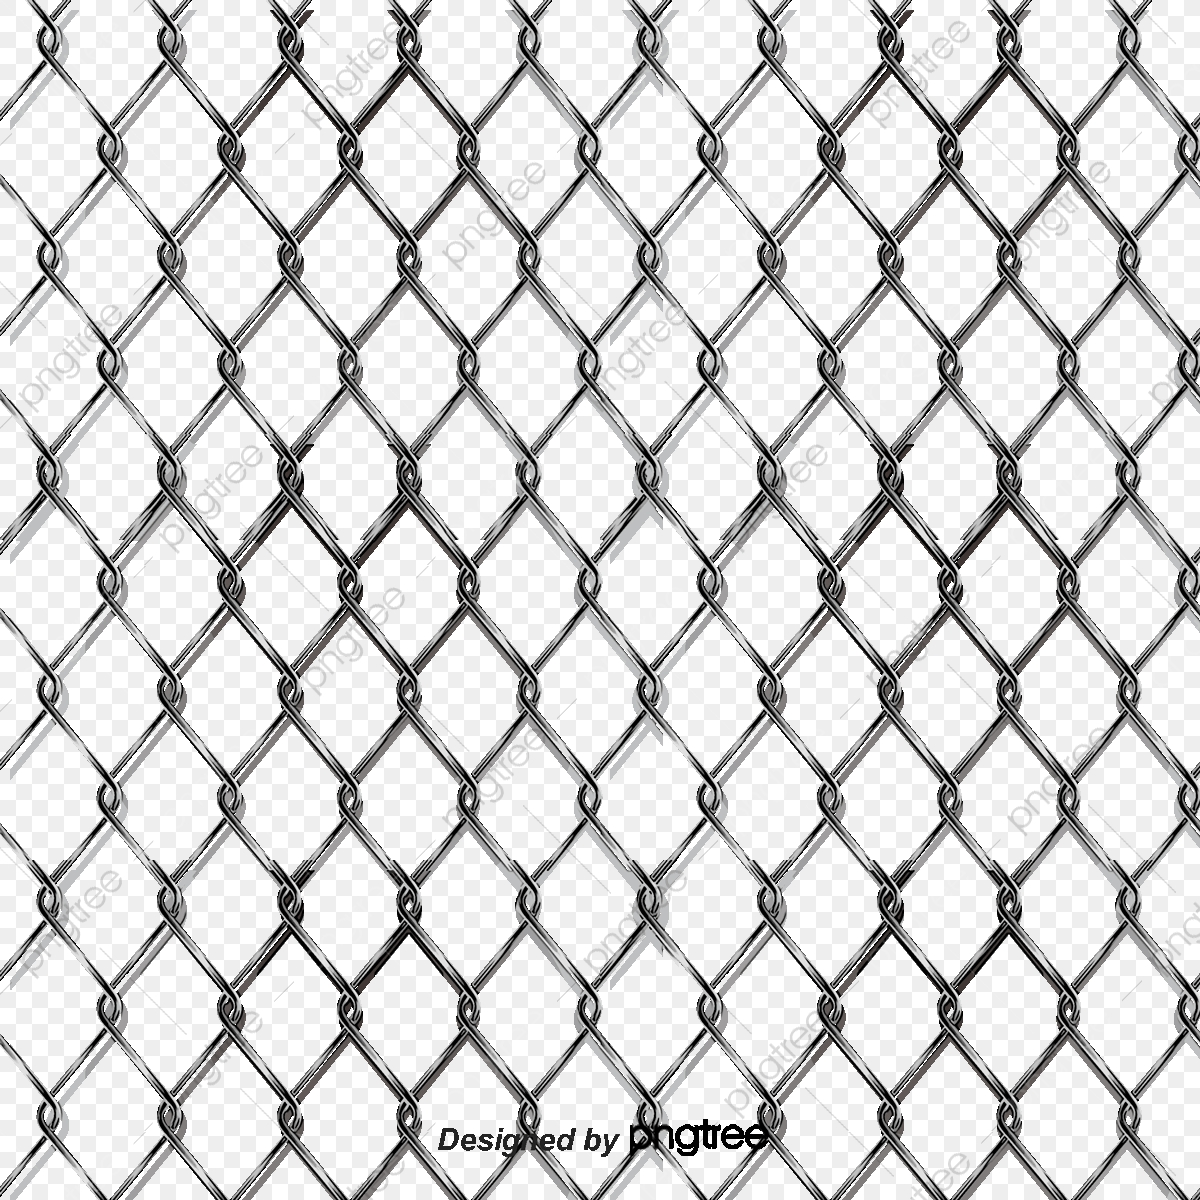 Steel Mesh, Wire, Net PNG and Vector with Transparent Background for.